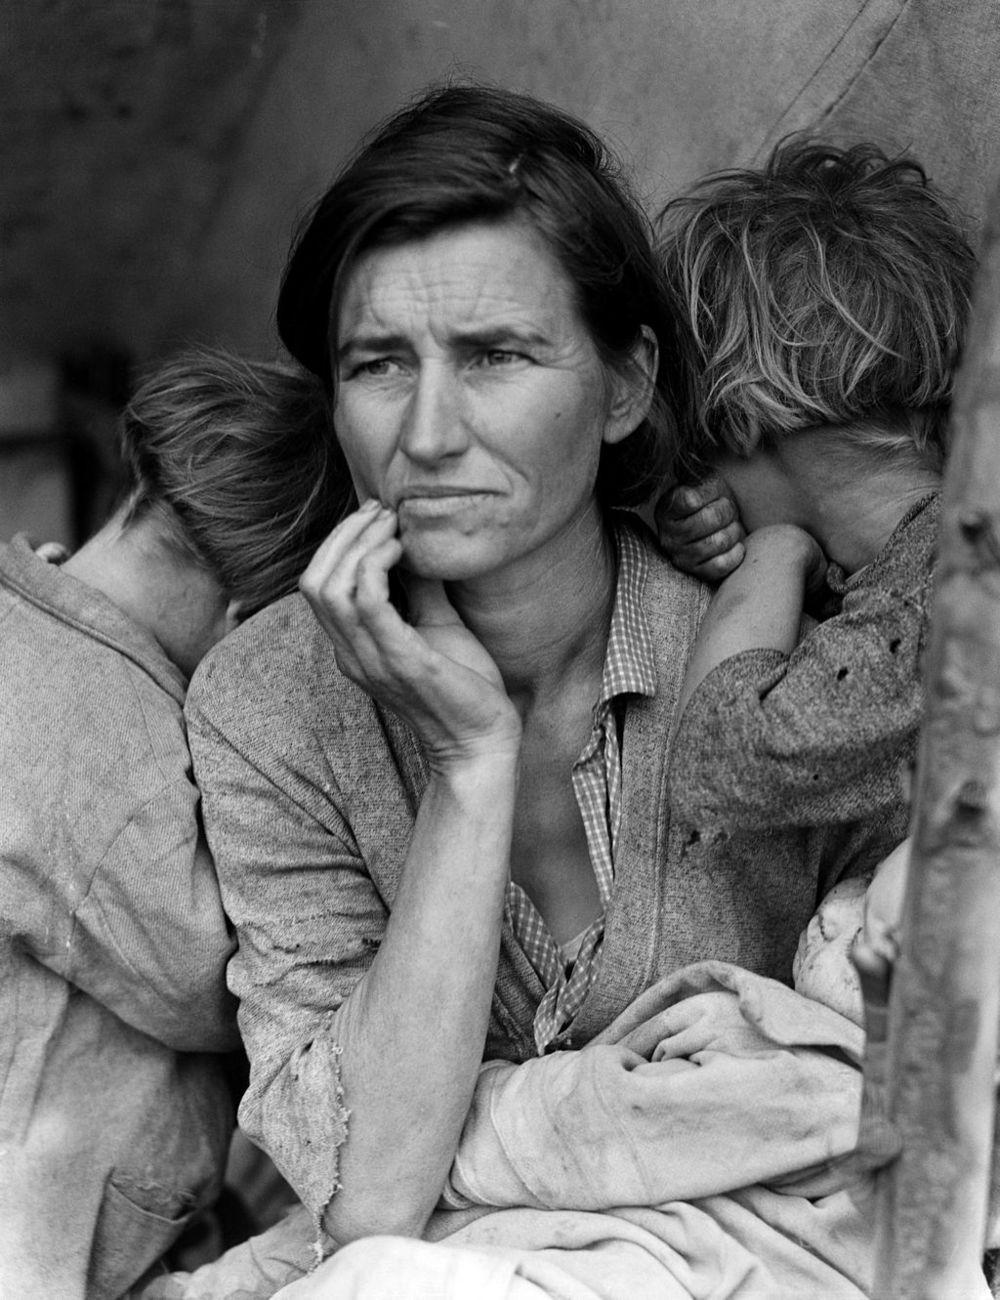 Dorothea Lange's Migrant Mother, iconic photo portrait from the Great Depression.